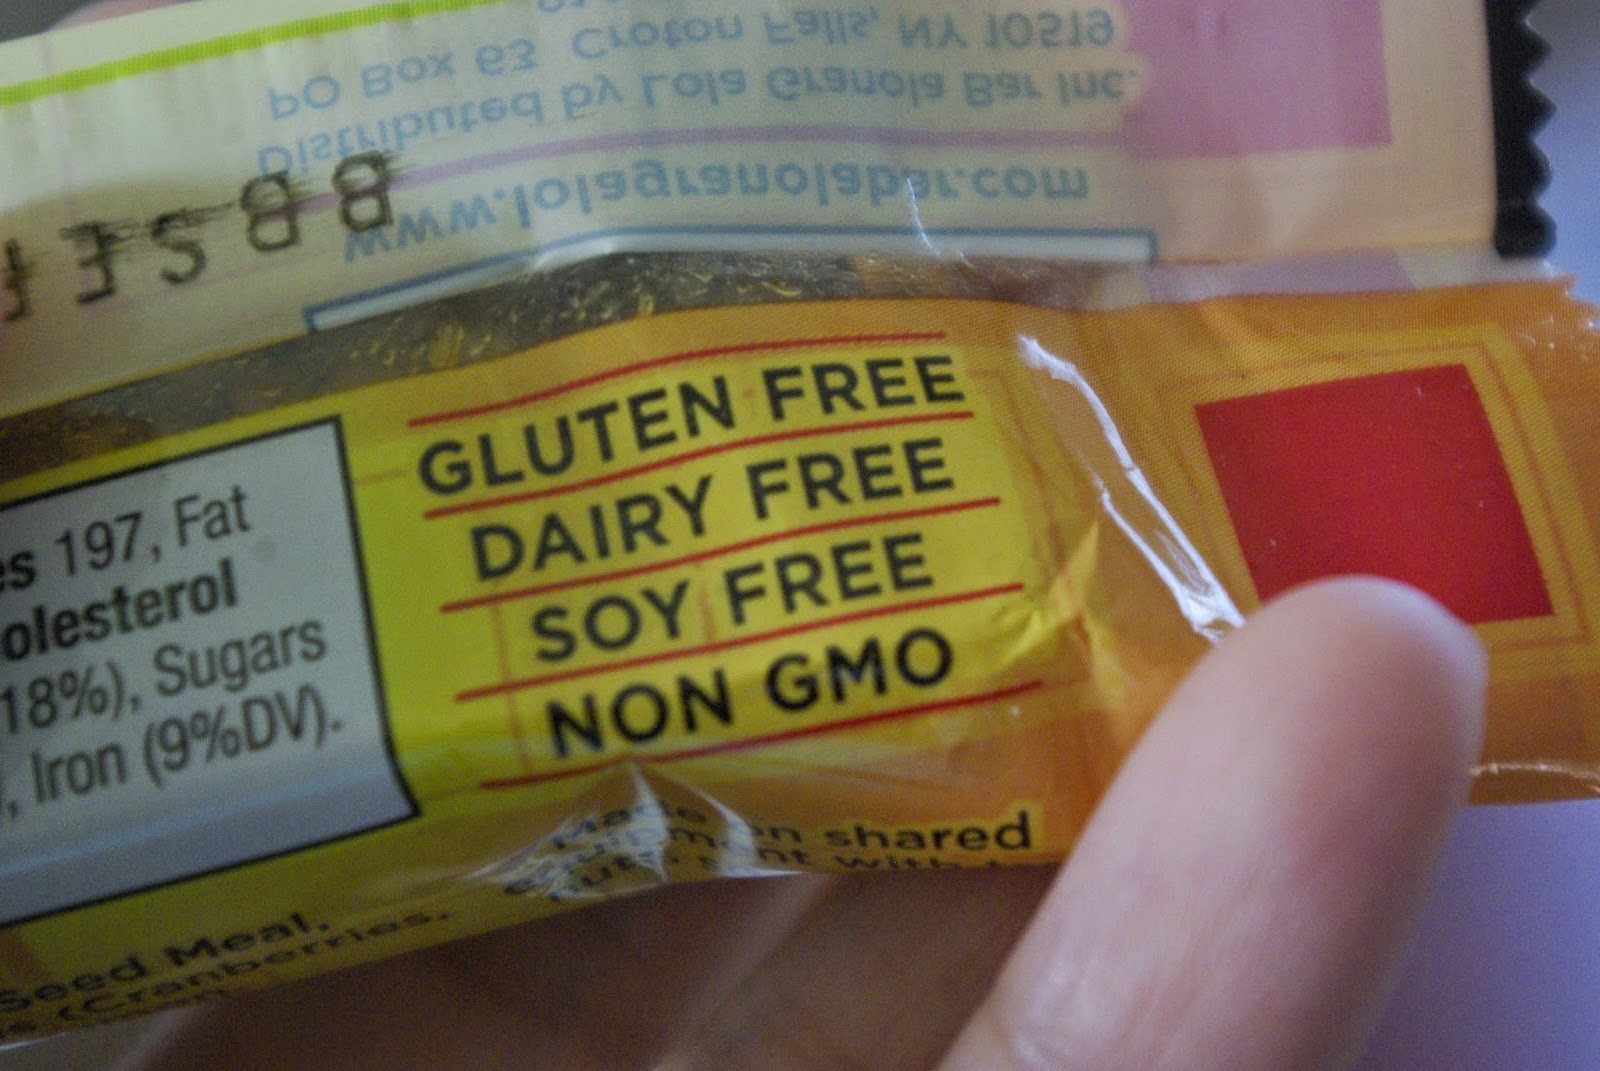 Gluten-free, dairy-free, soy-free and non-GMO